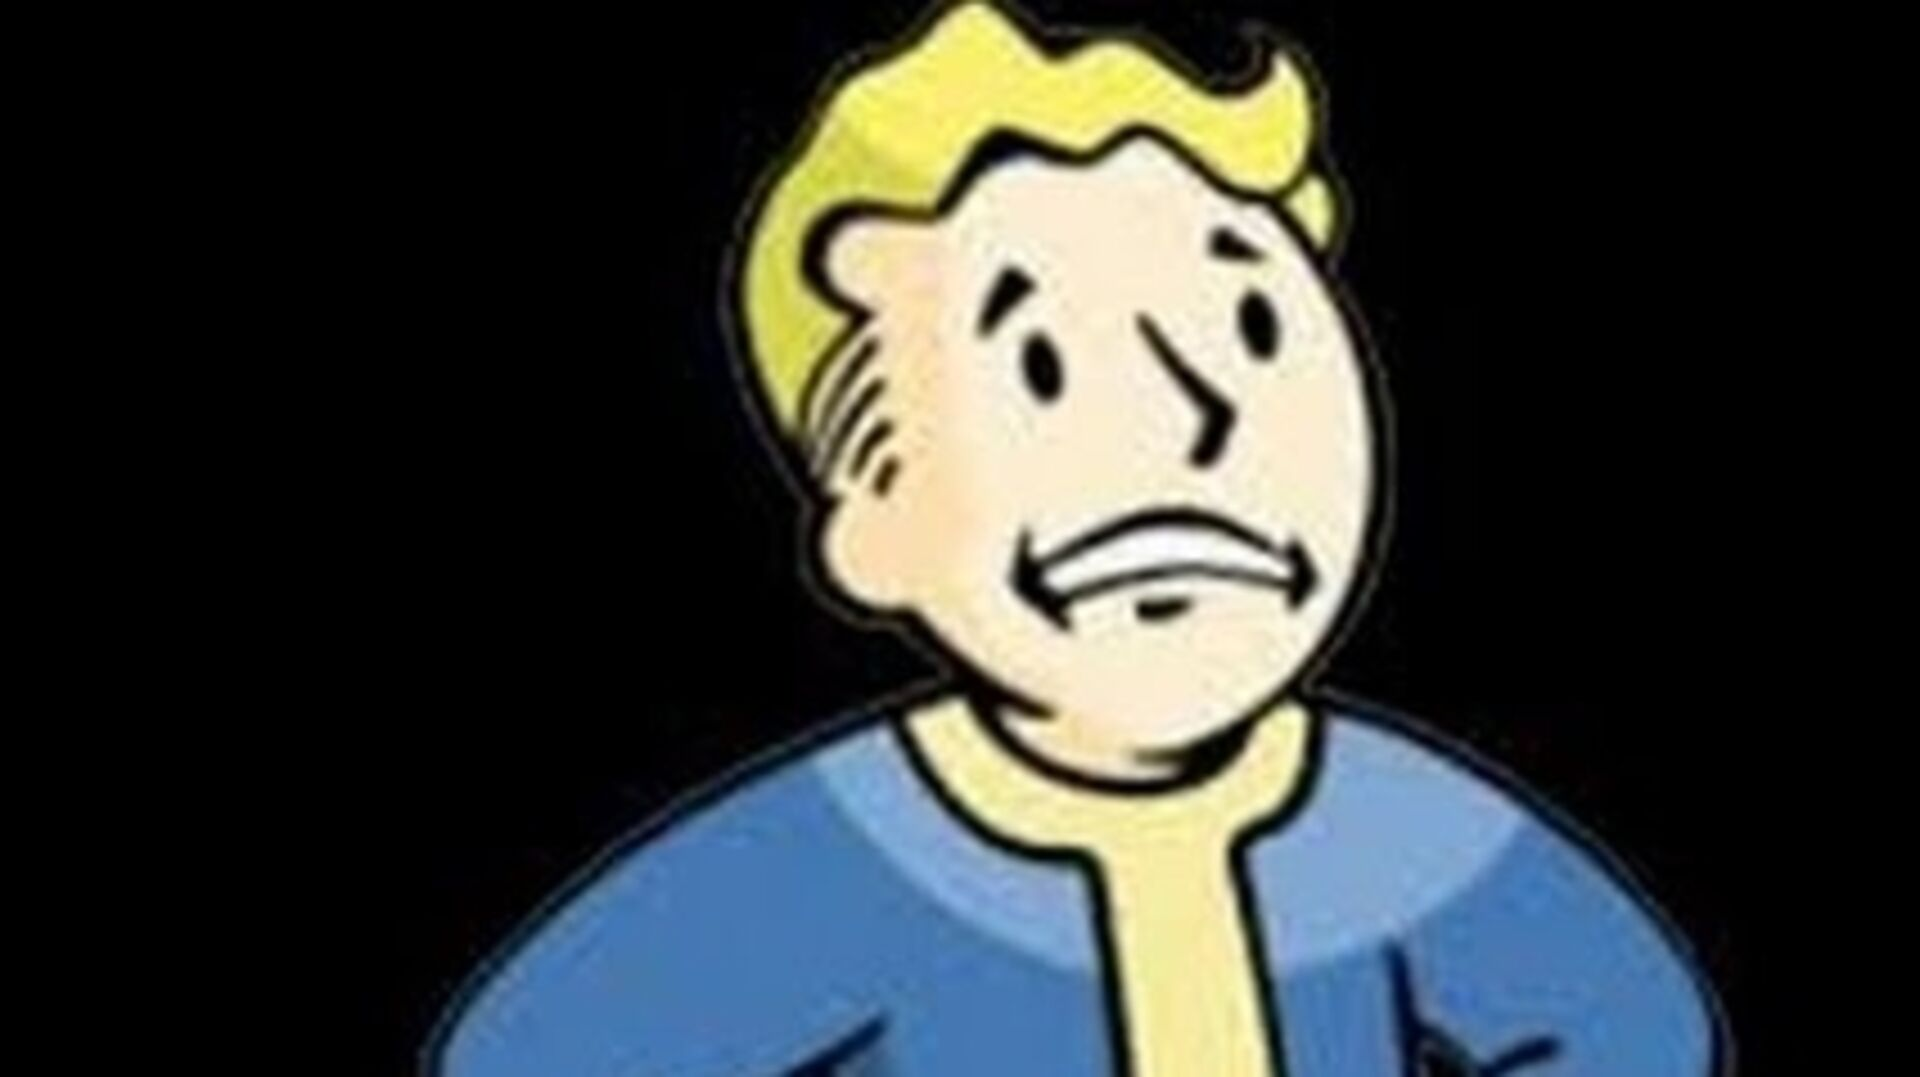 Bethesda leaked Fallout 76 customer names, addresses, contact